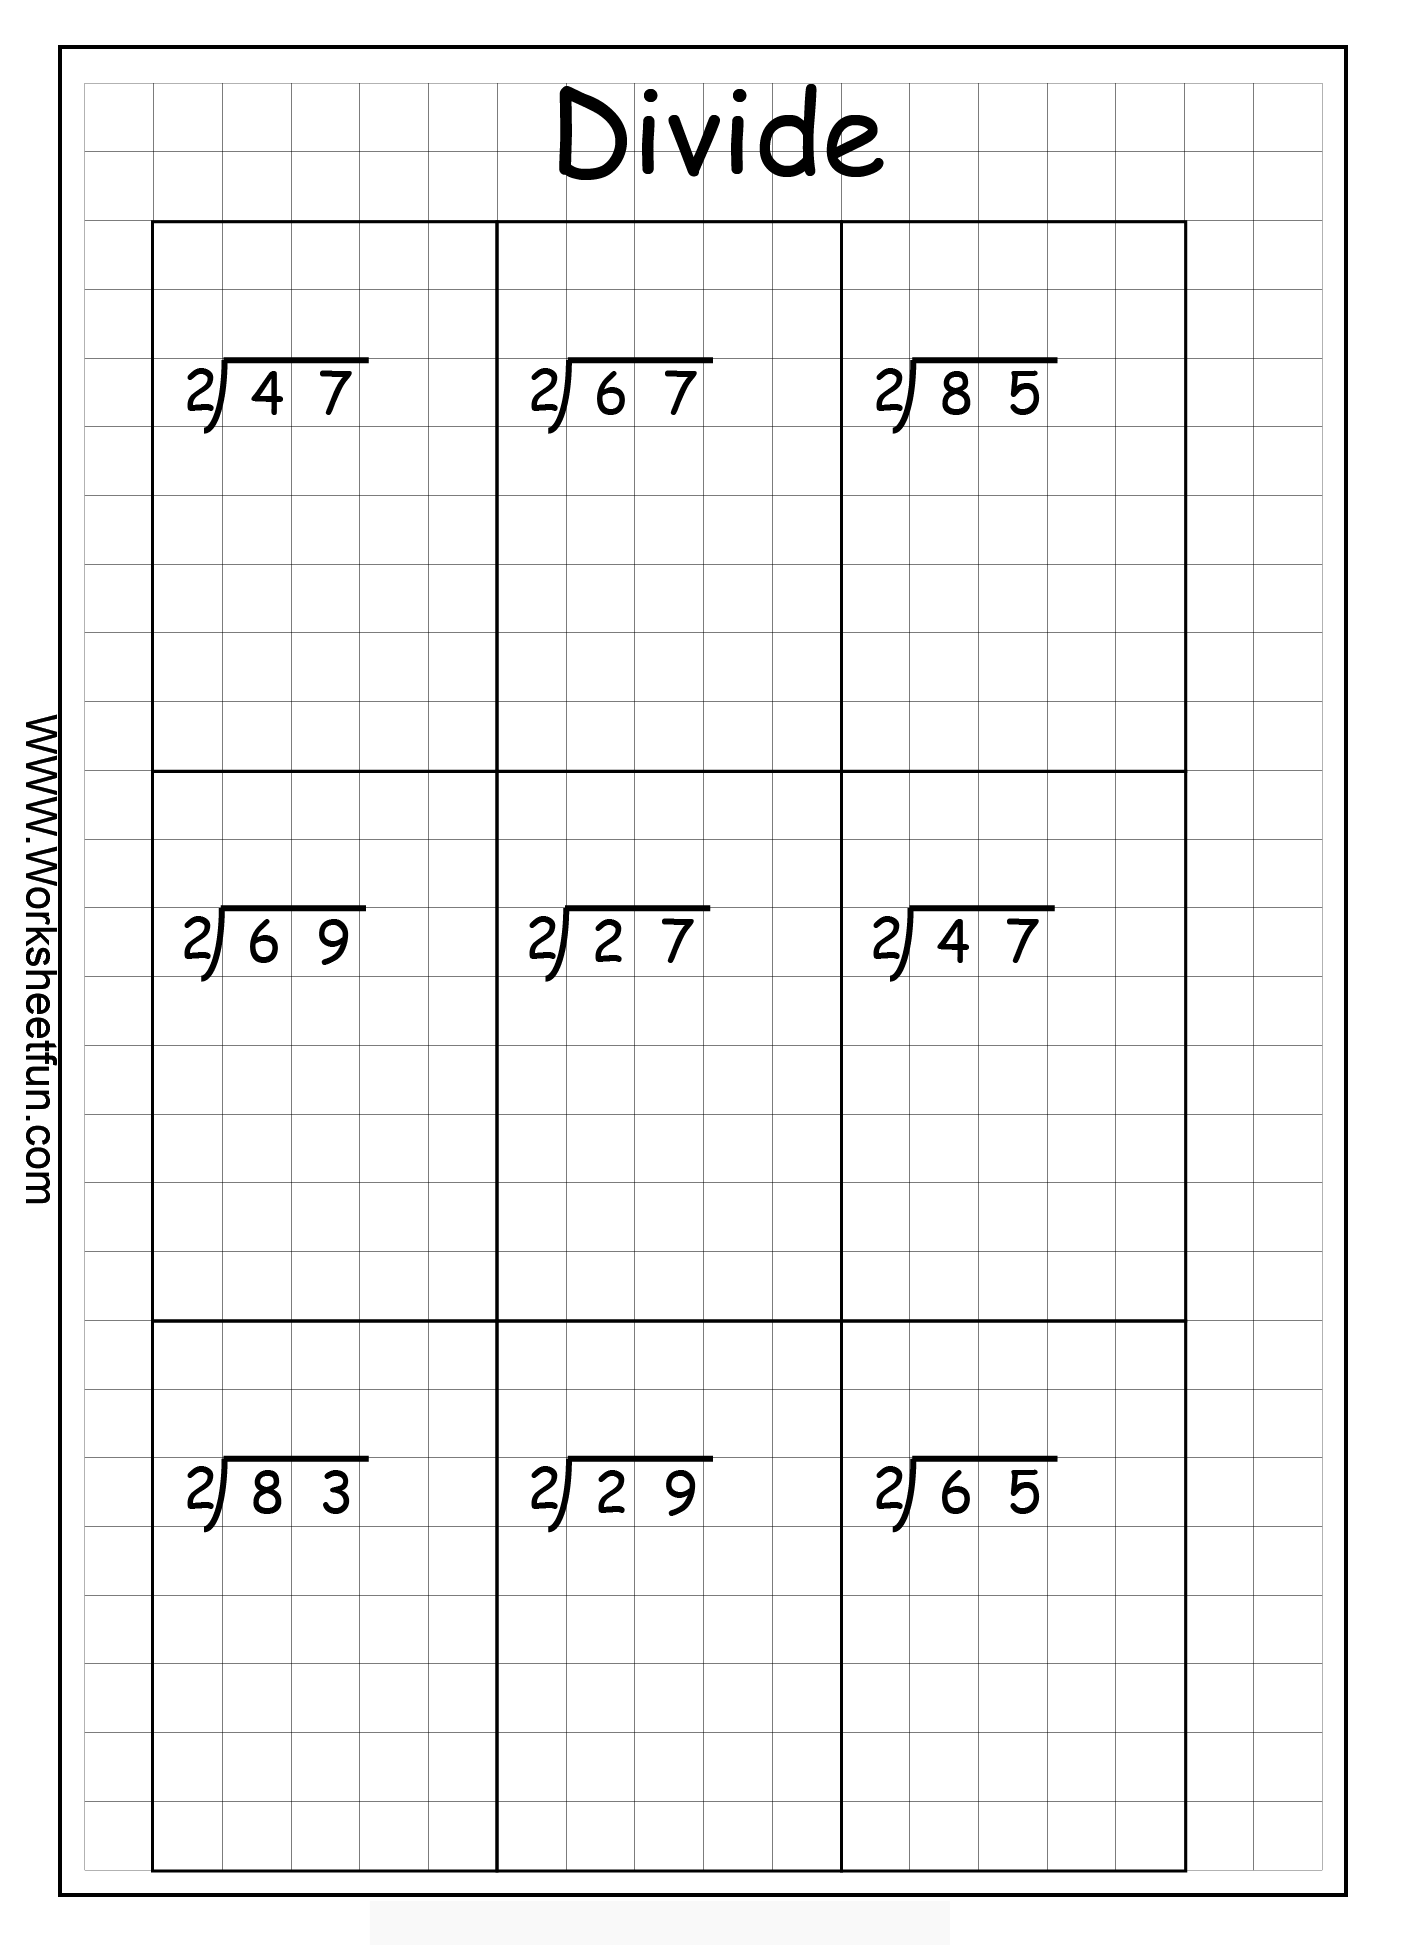 long division 2 digits by 1 digit with remainders 8 worksheets free printable worksheets. Black Bedroom Furniture Sets. Home Design Ideas